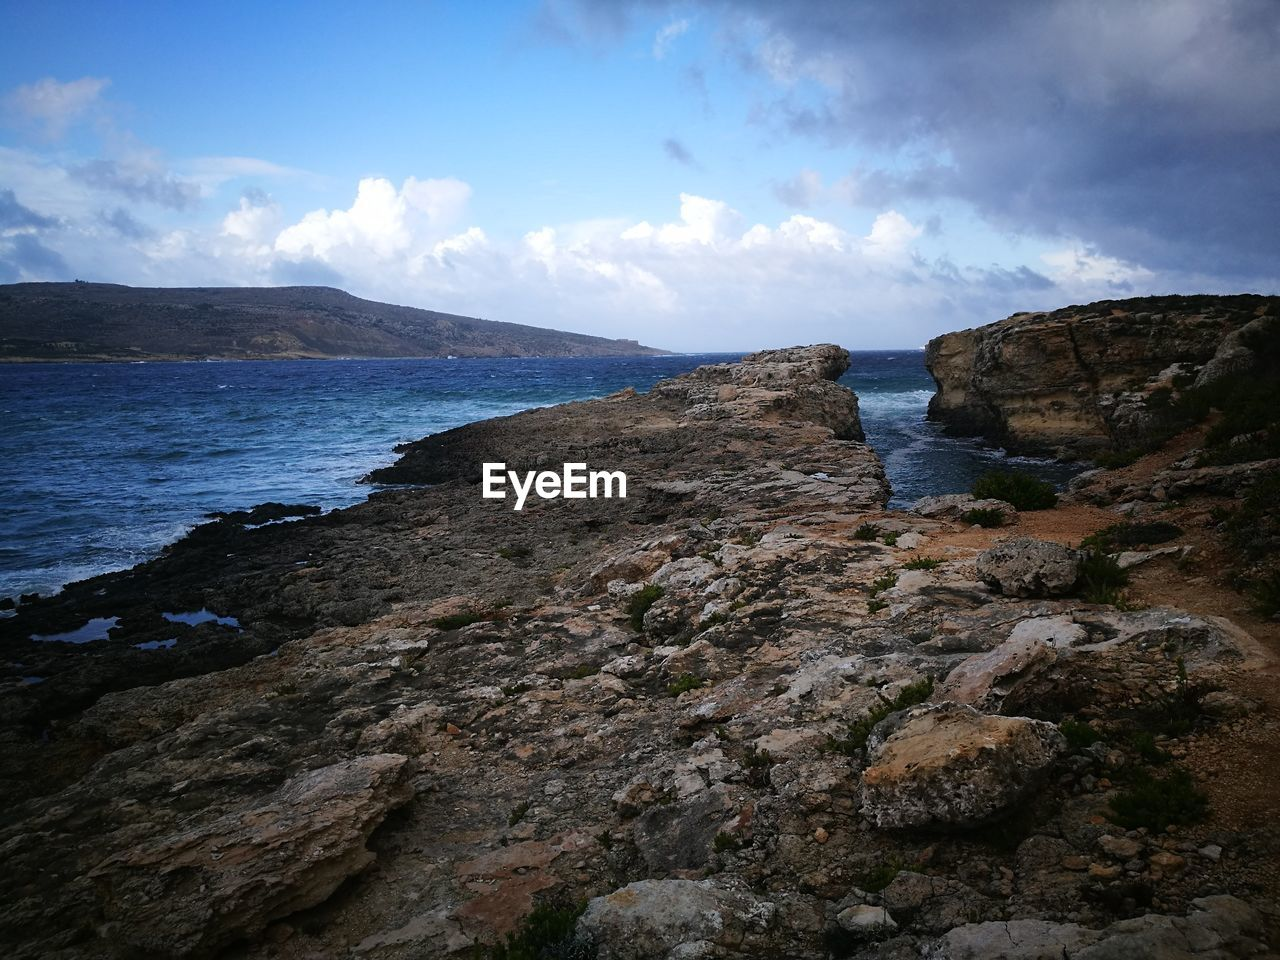 sky, rock, cloud - sky, water, sea, nature, beauty in nature, rock - object, solid, land, beach, mountain, environment, tranquility, scenics - nature, no people, rock formation, outdoors, tranquil scene, rocky coastline